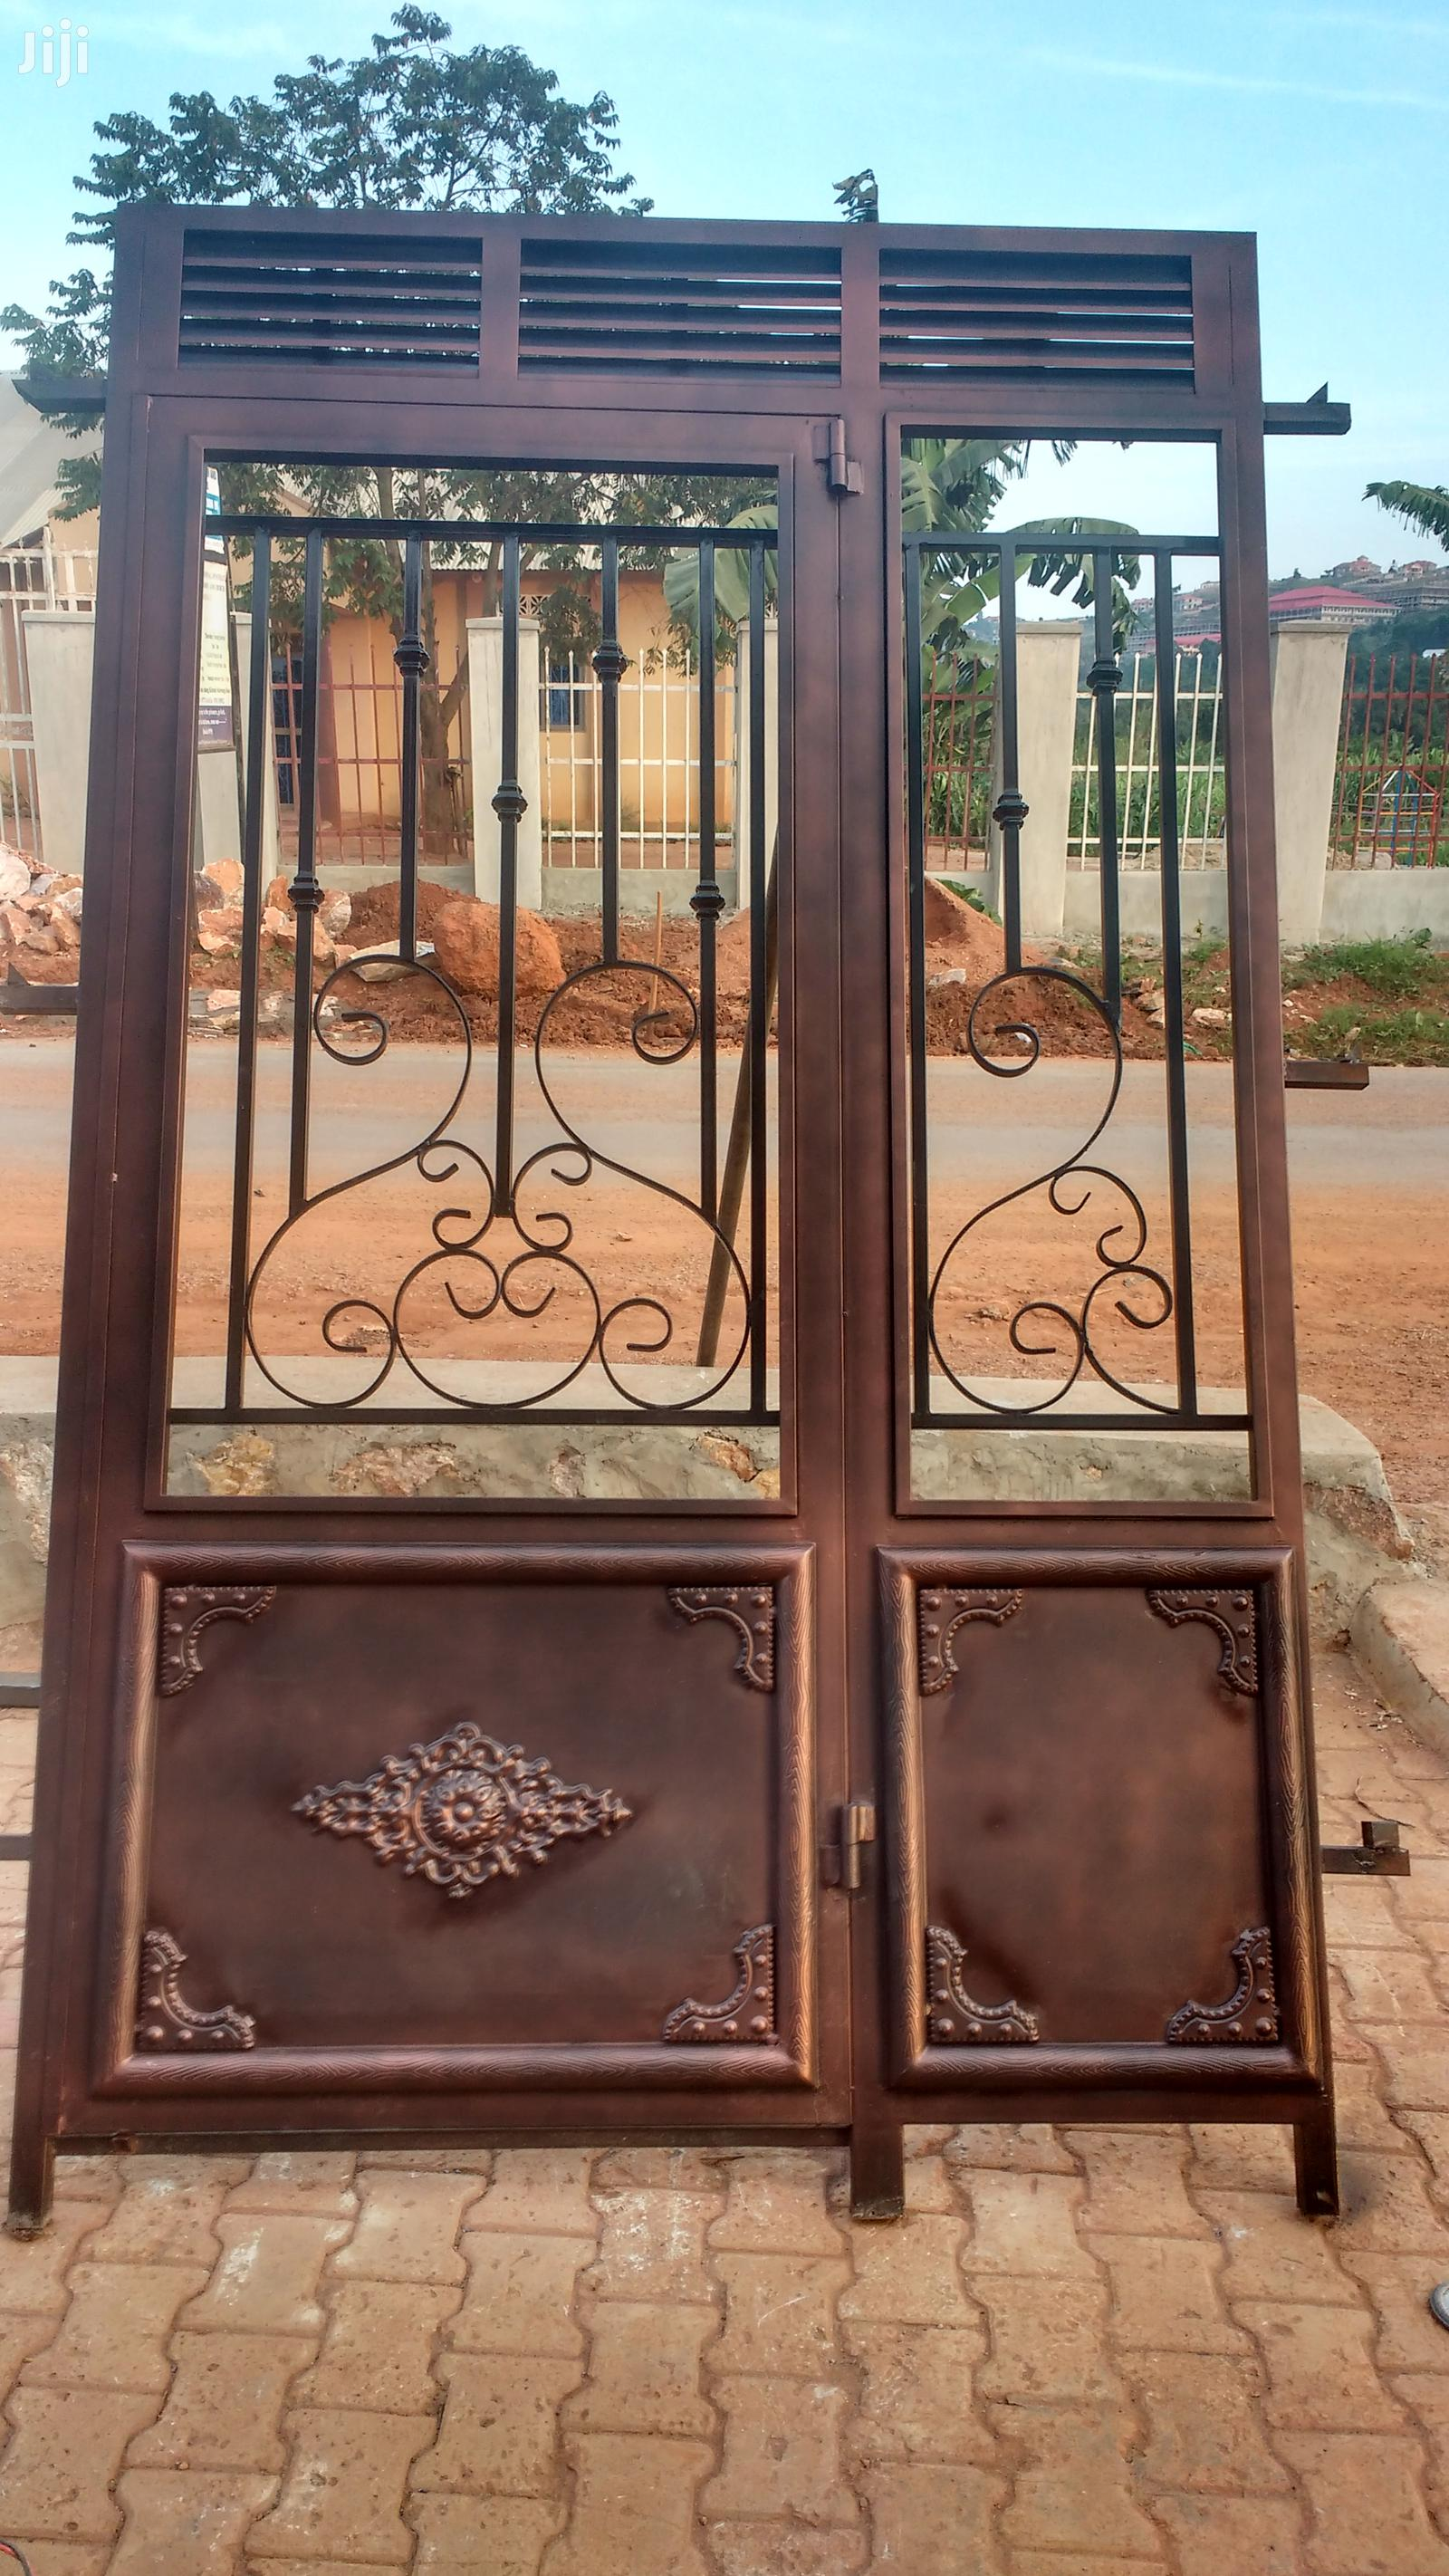 Security Back Doors | Doors for sale in Kampala, Central Region, Uganda